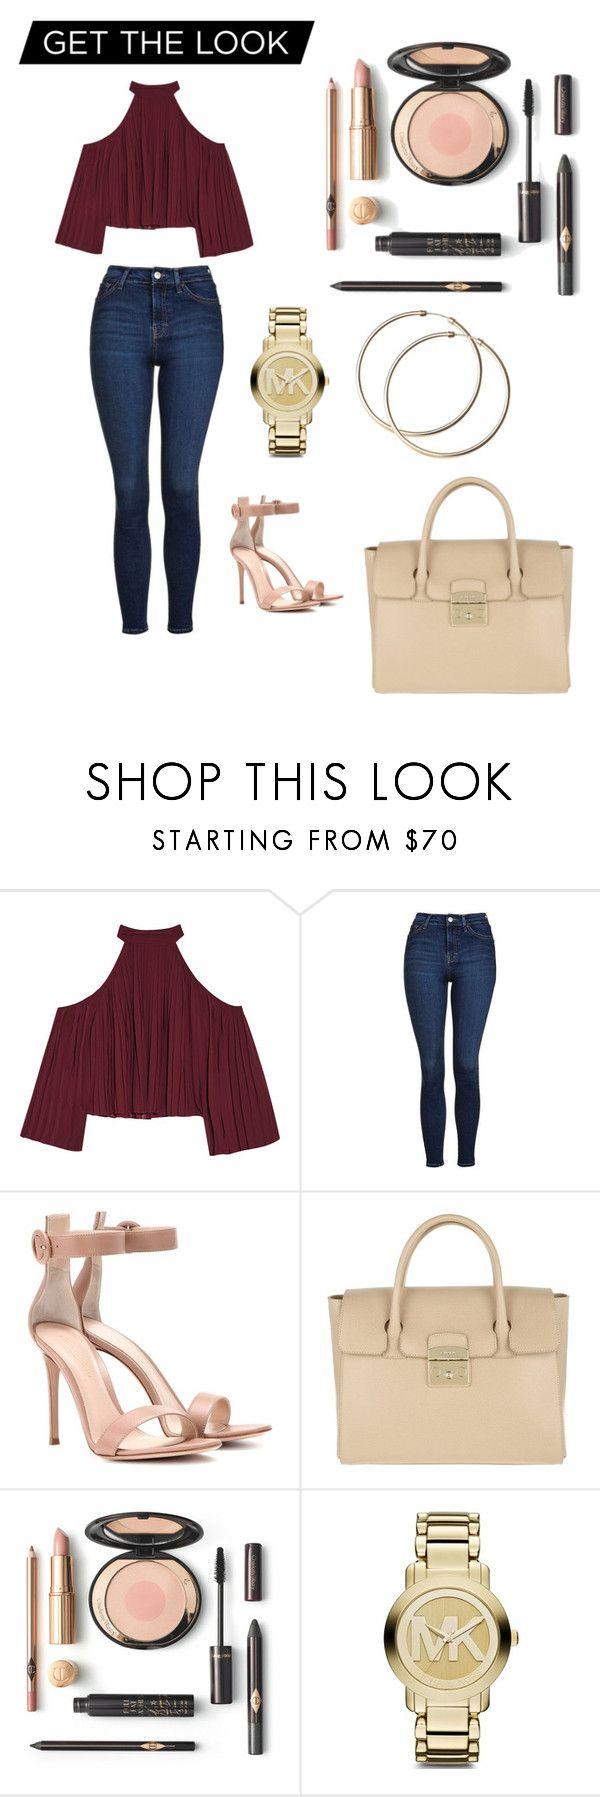 """Sunday outfit🍷"" by nicolemtnez on Polyvore featuring W118 by Walter Baker, Topshop, Gianvito Rossi, Furla y Michael Kors"